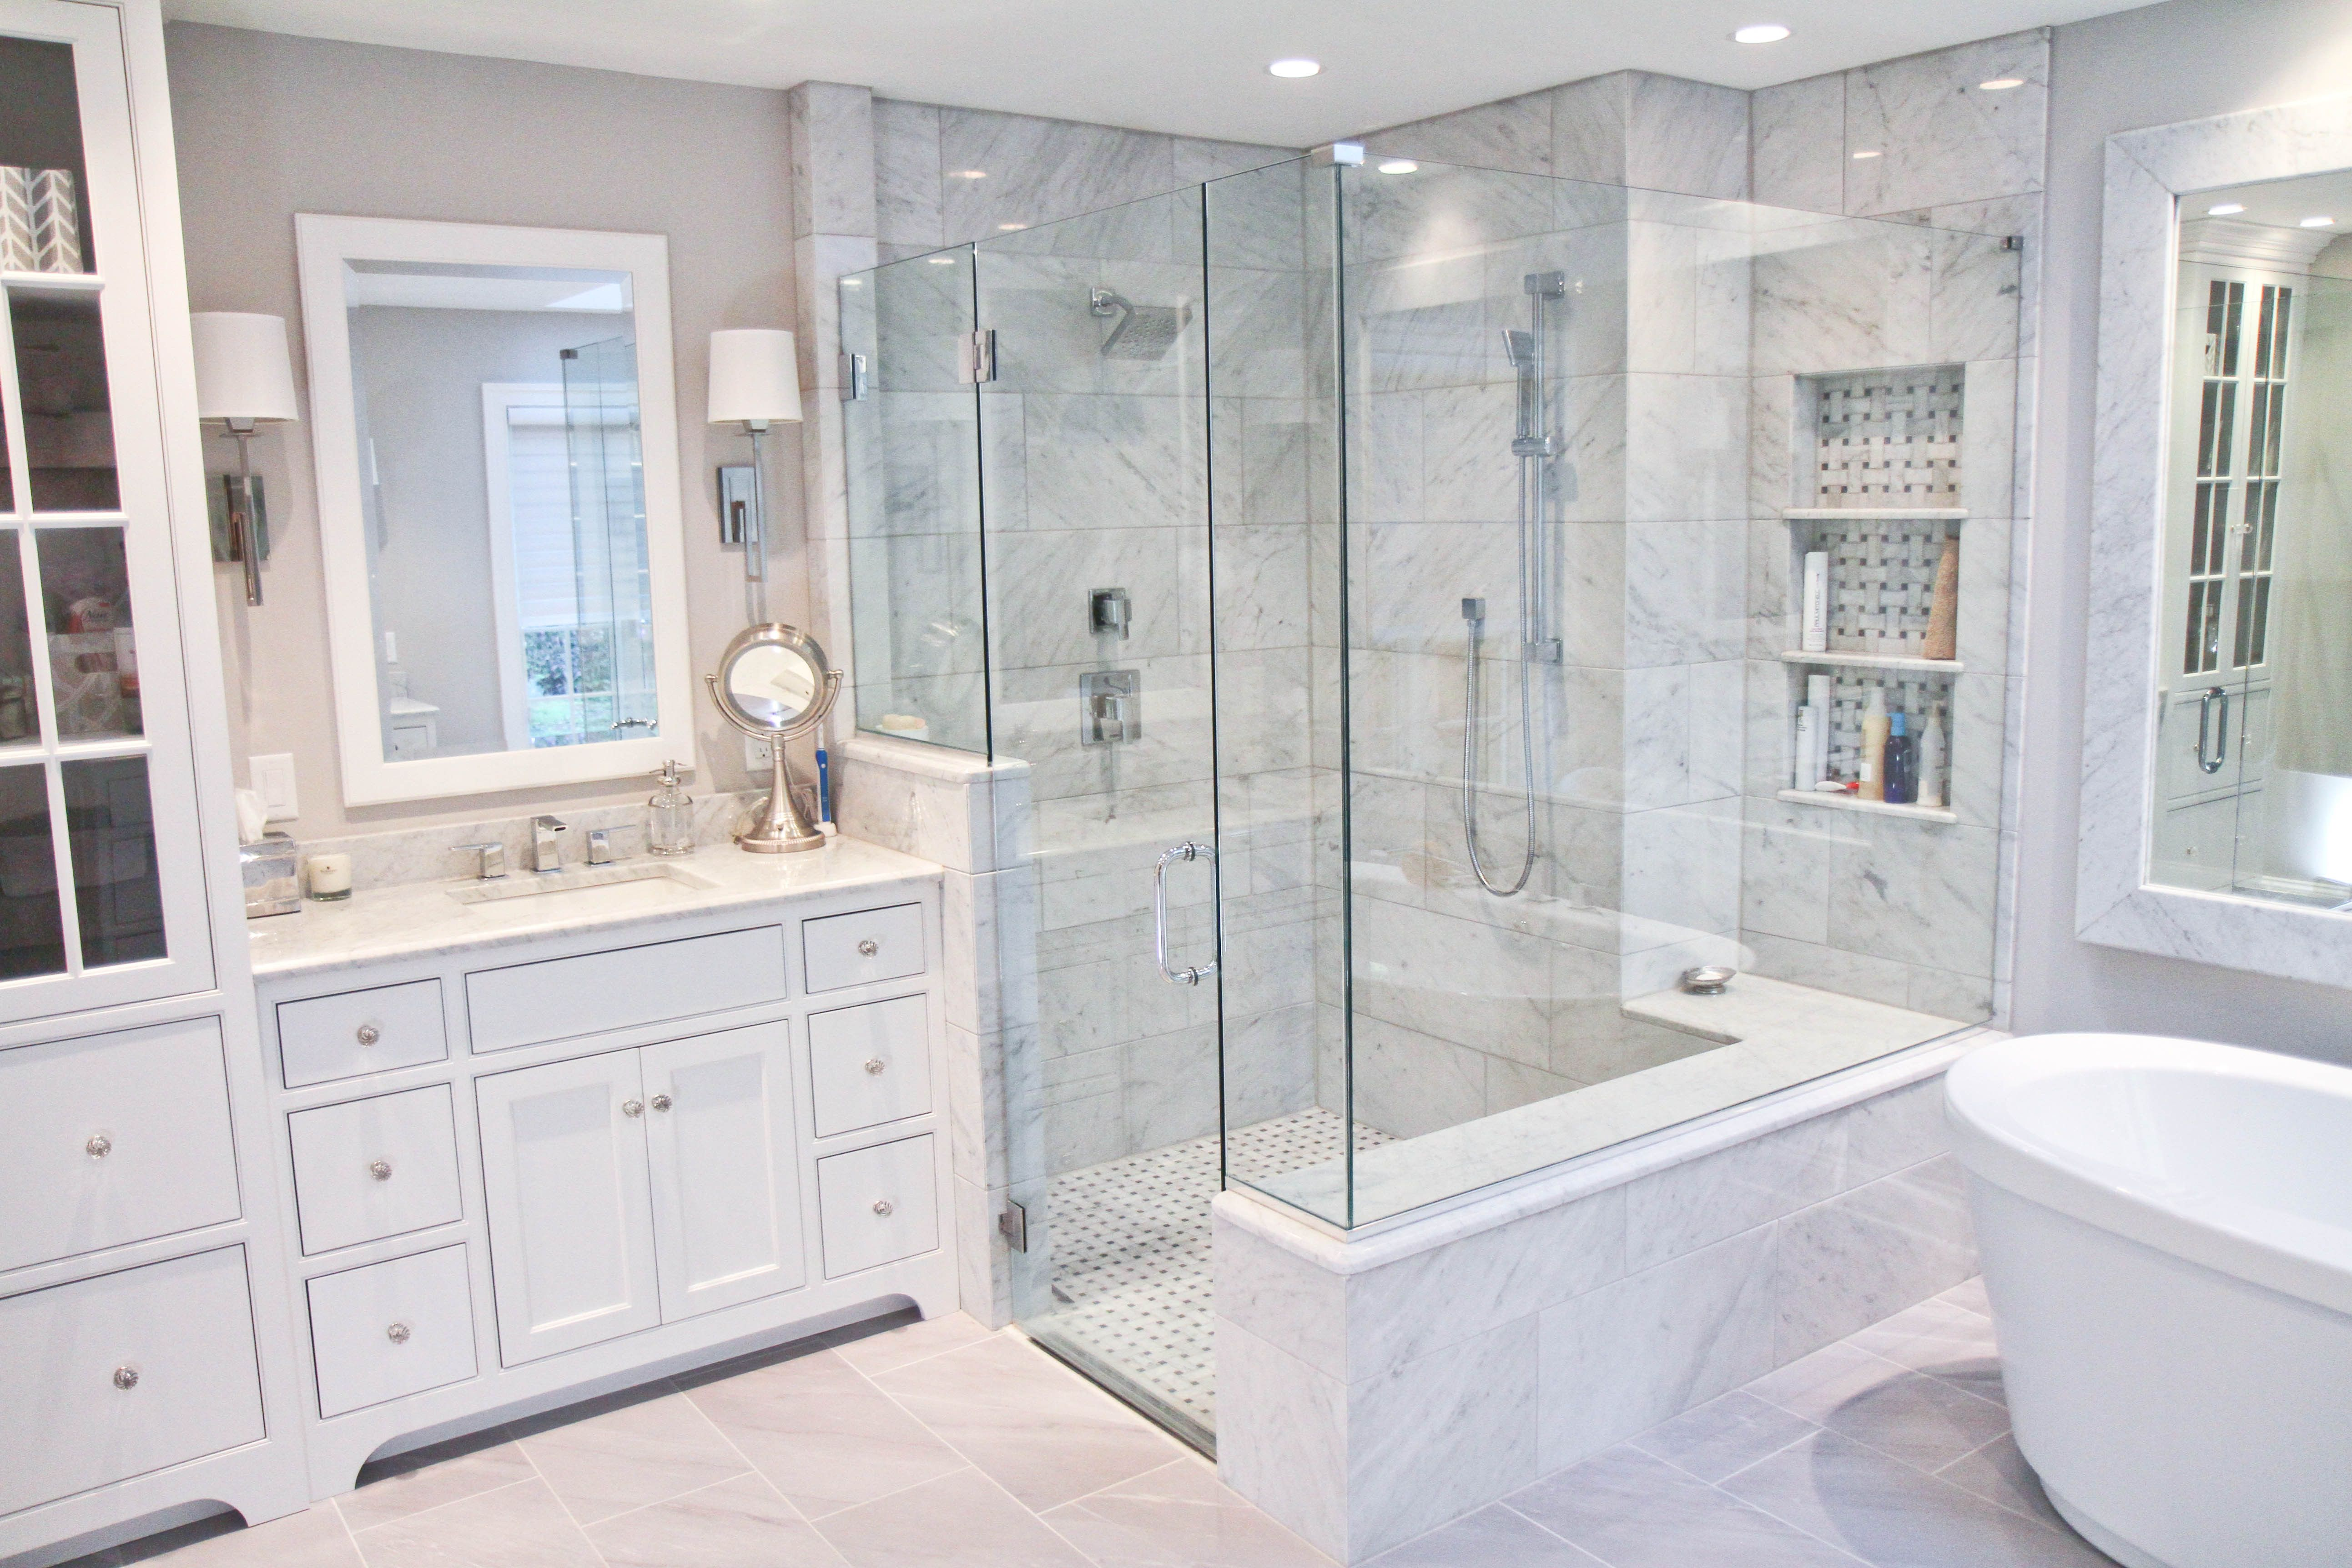 Pin by Jean Stoyer on Bathroom Remodeling Ideas | Pinterest ...